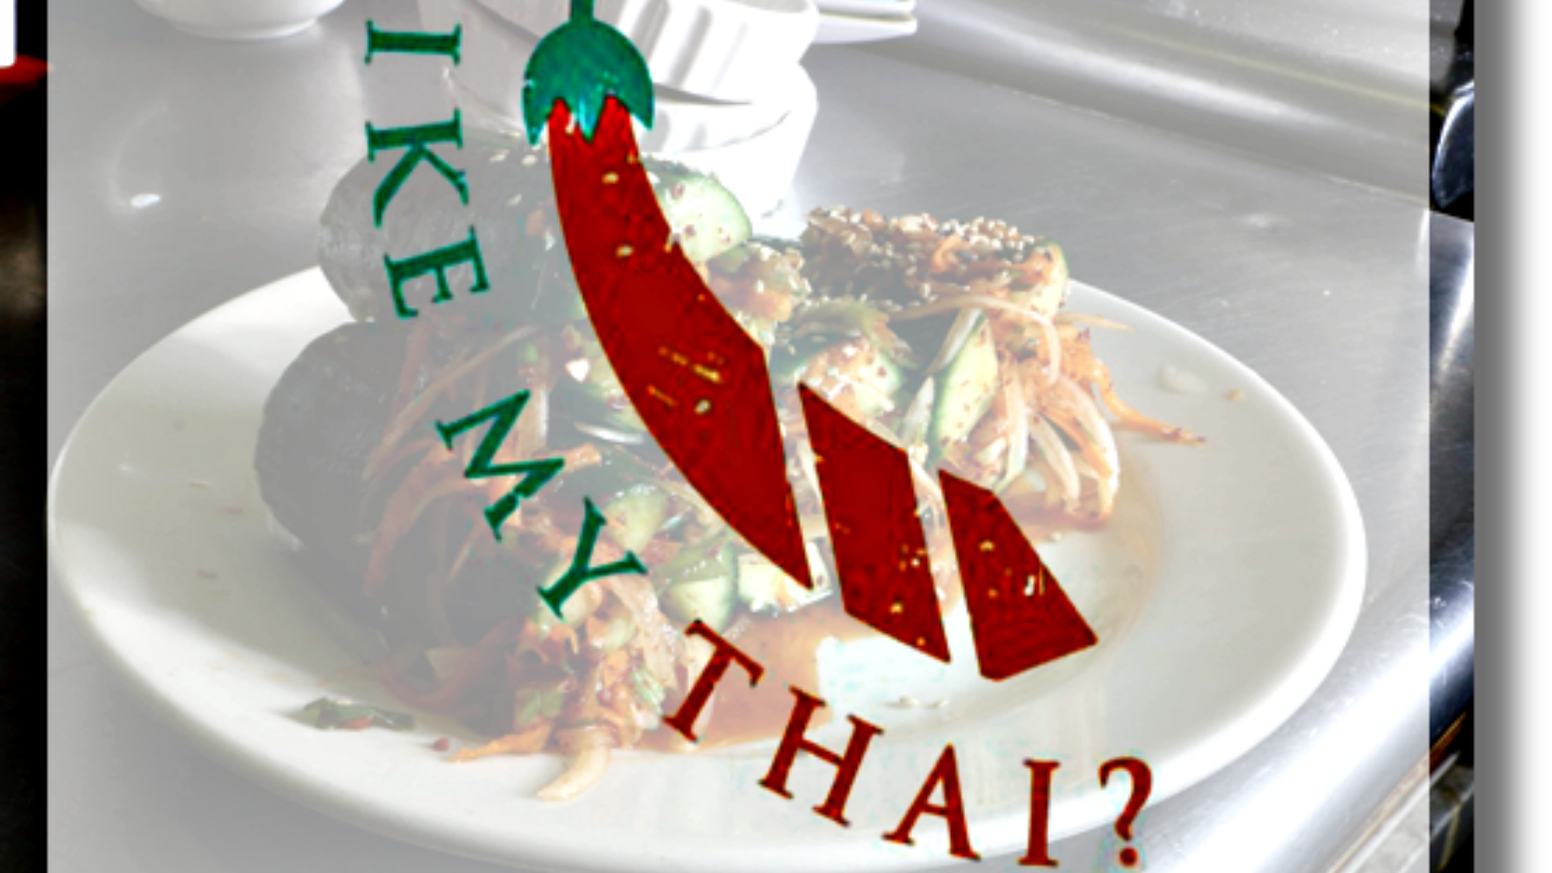 Like My Thai - A South Asian Food Experience! by Michael and